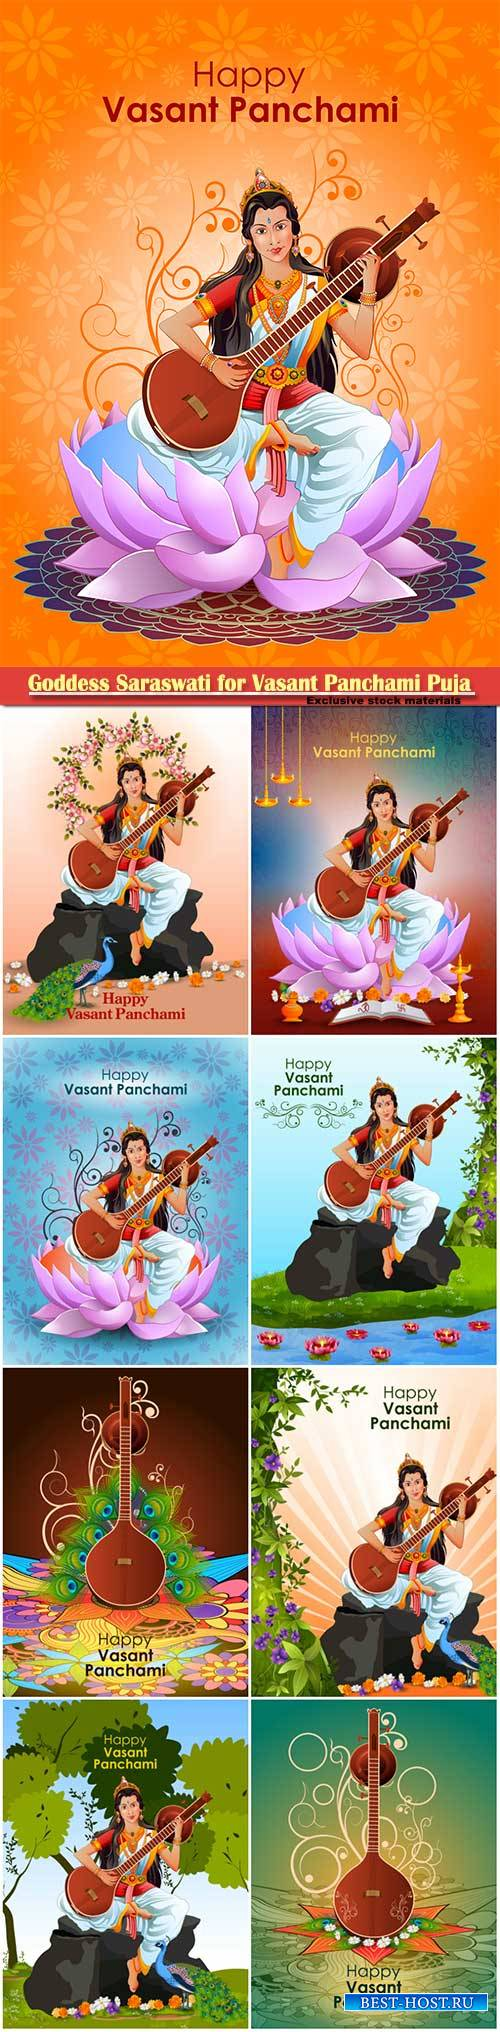 Goddess Saraswati for Vasant Panchami Puja of India